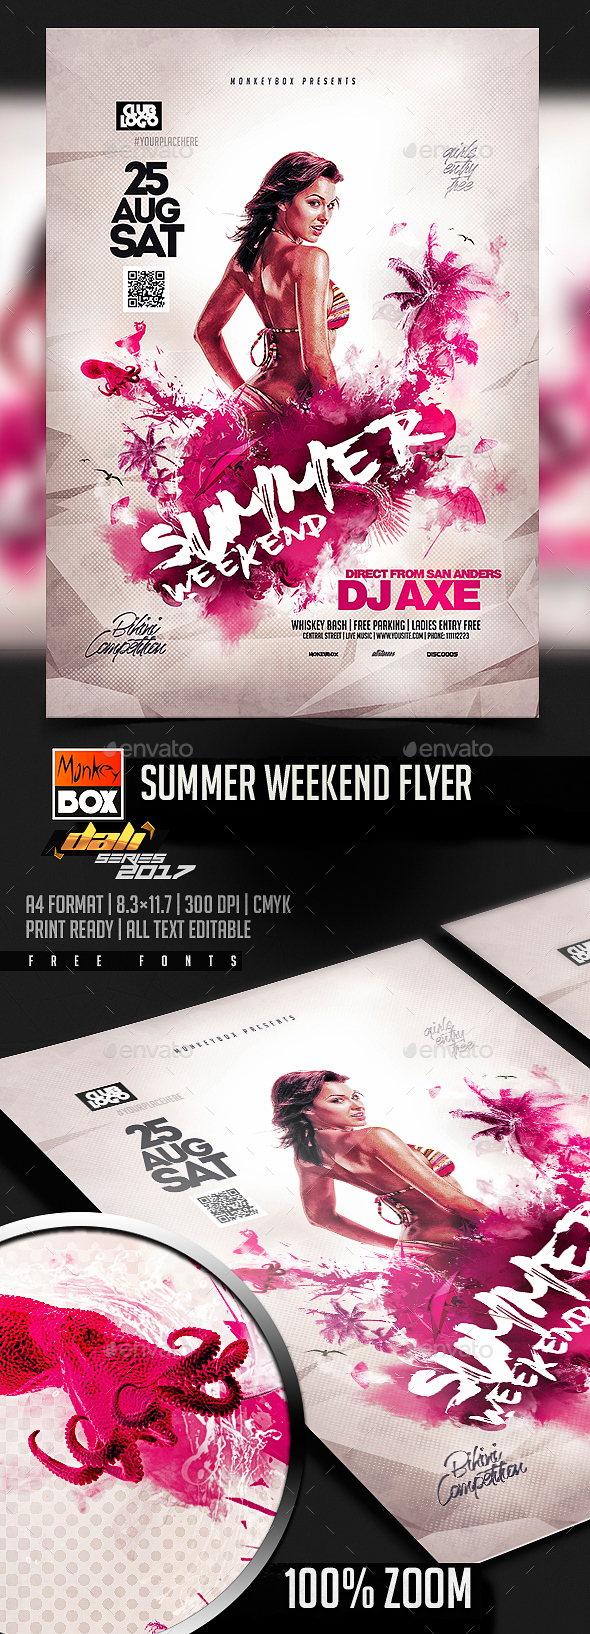 Summer Weekend Flyer - Events Flyers